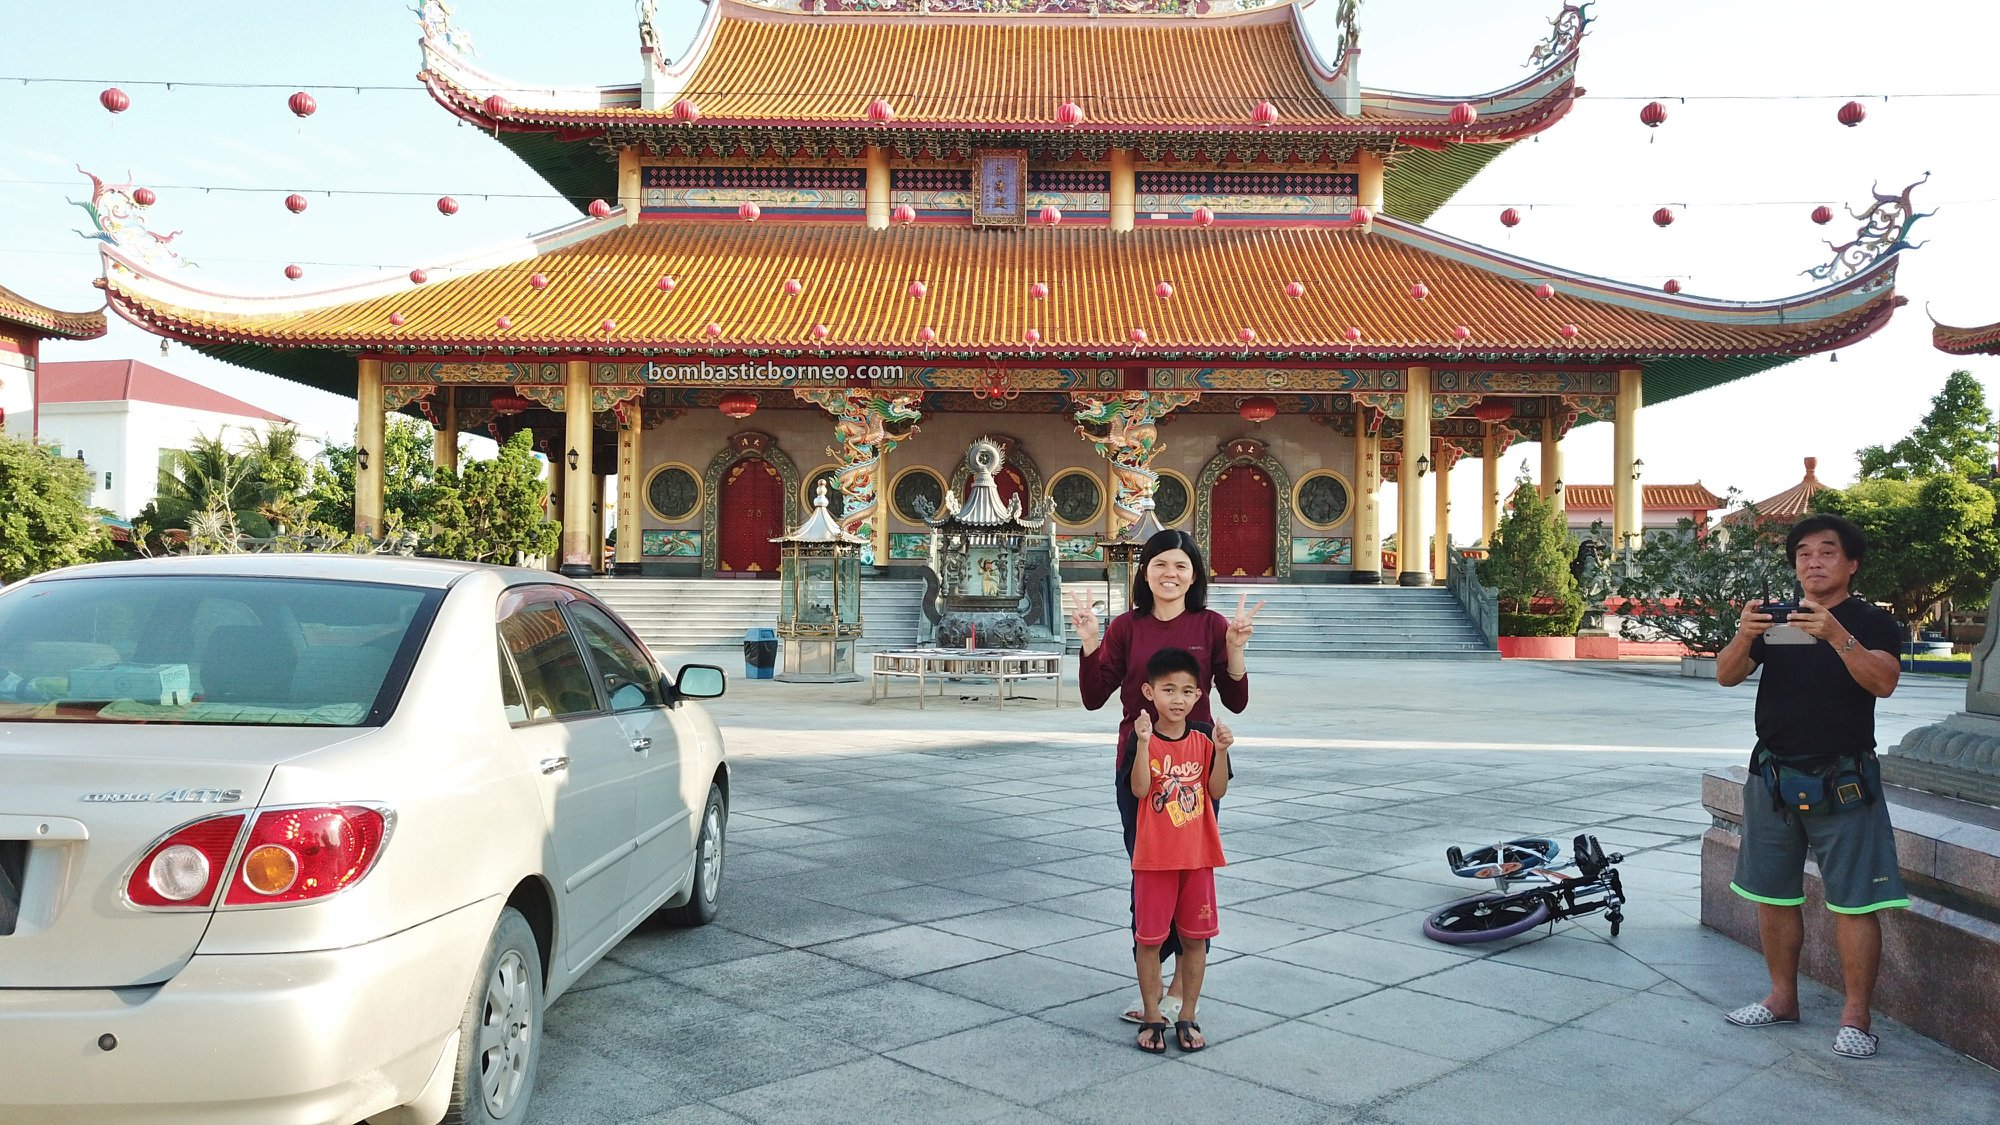 San Ching Tien Temple, backpackers, destination, chinese temple, Discover Miri City, exploration, Malaysia, Tourism, tourist attraction, travel guide, Trans Borneo, 马来西亚砂拉越道教, 美里莲花山三清殿